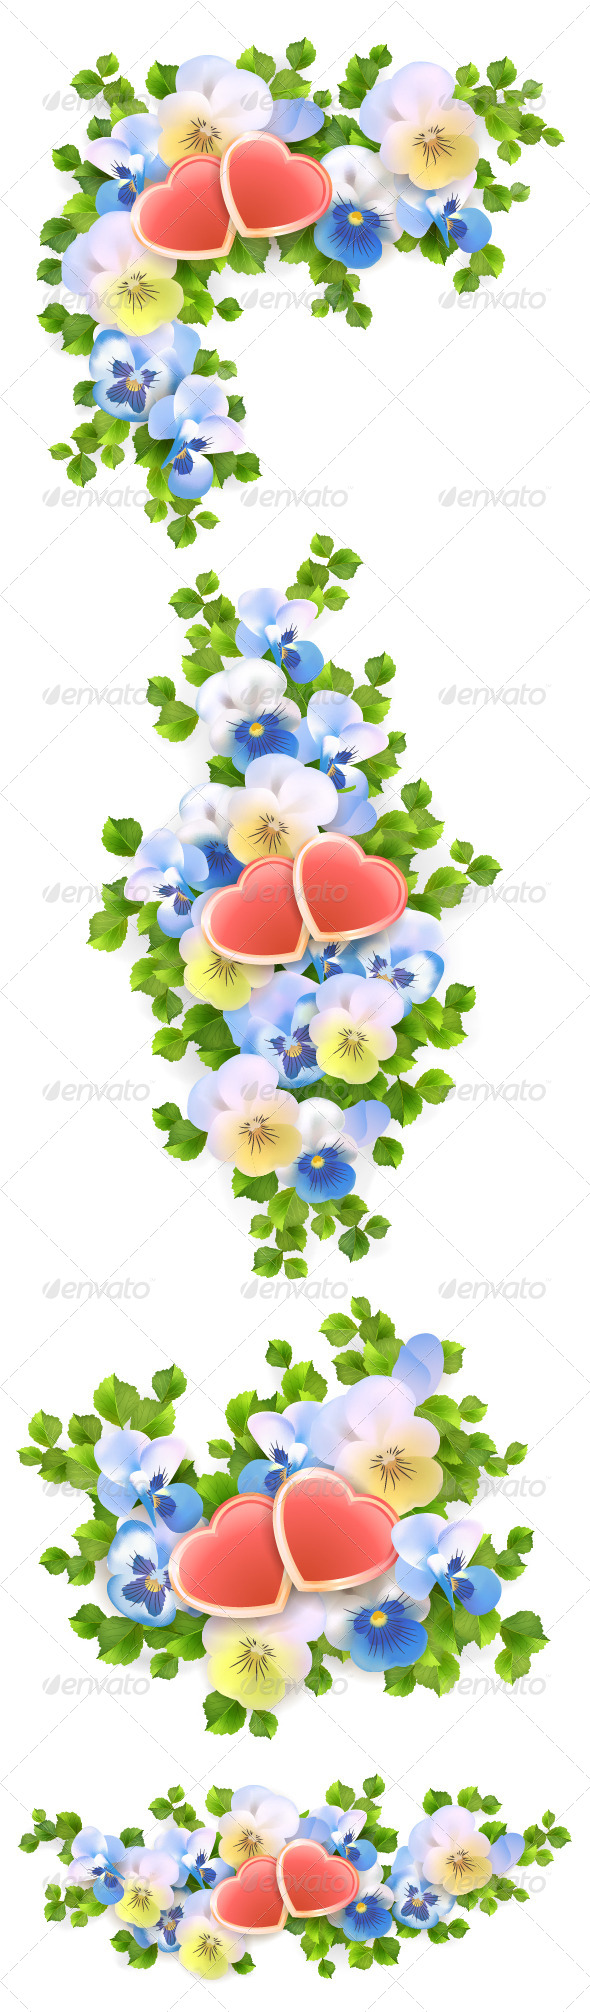 Flowers Bouquet Hearts on White Background - Flowers & Plants Nature